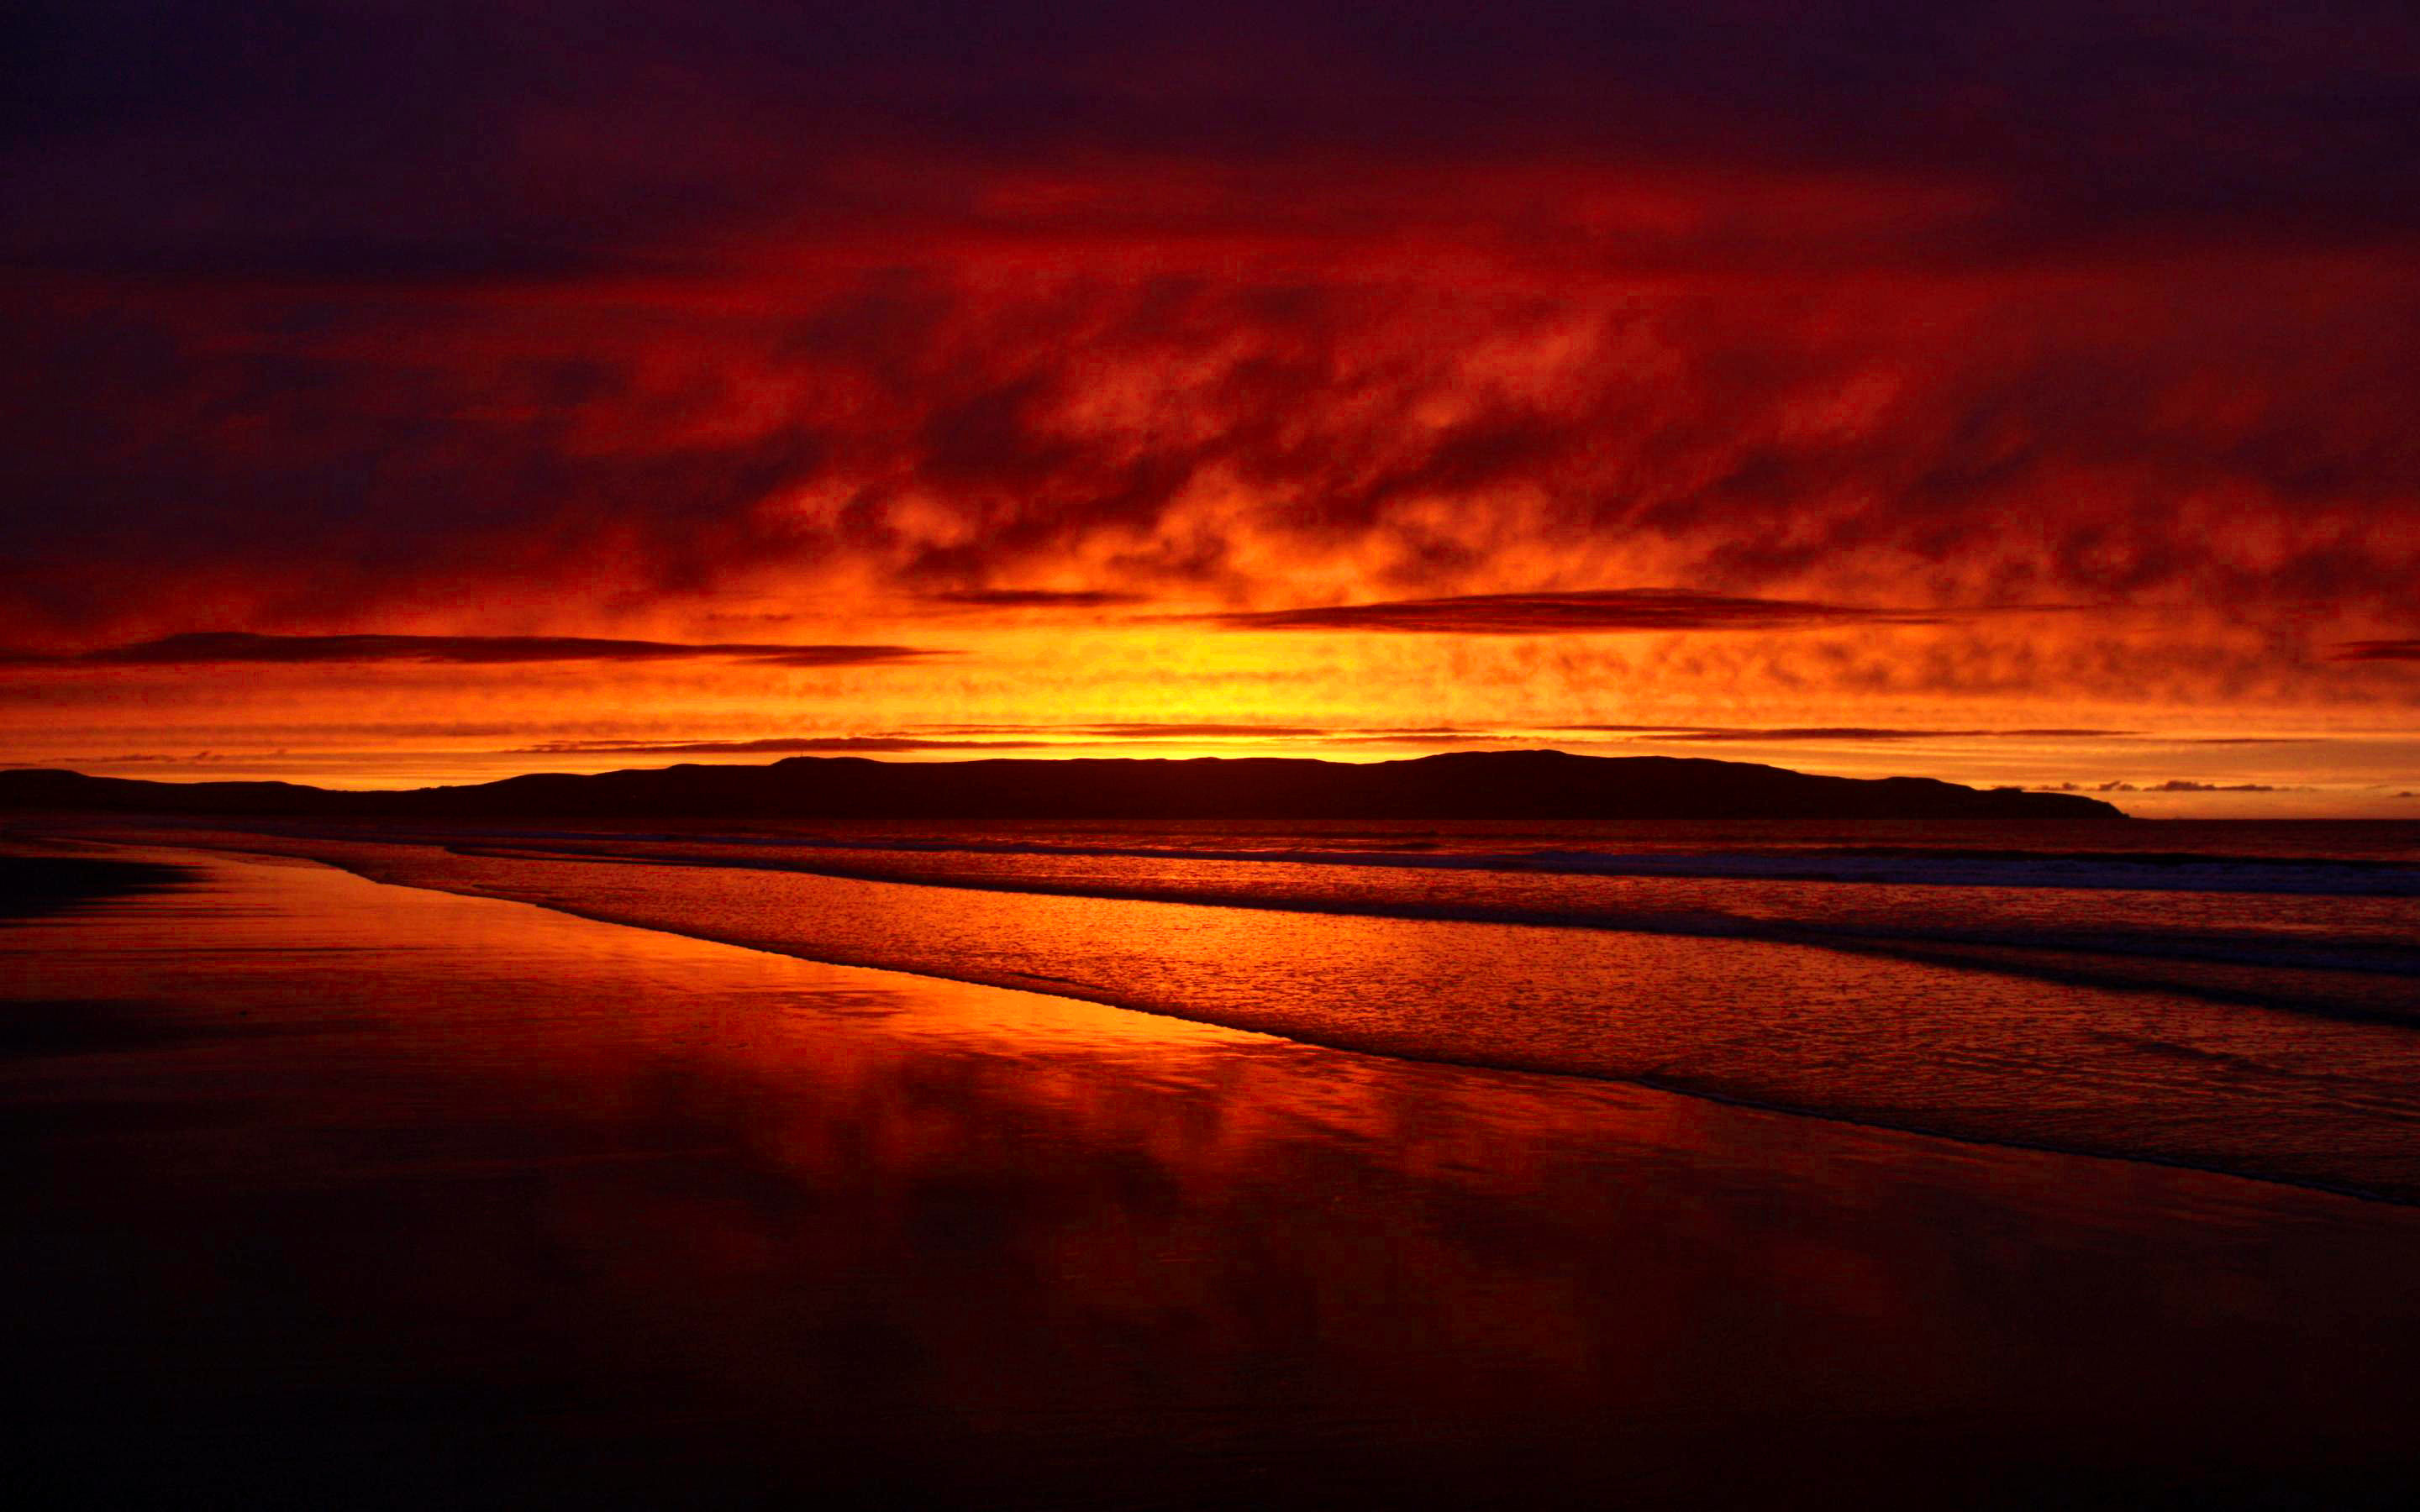 SUNSET [04] redbeach [06december2012thursday] [020731 ...